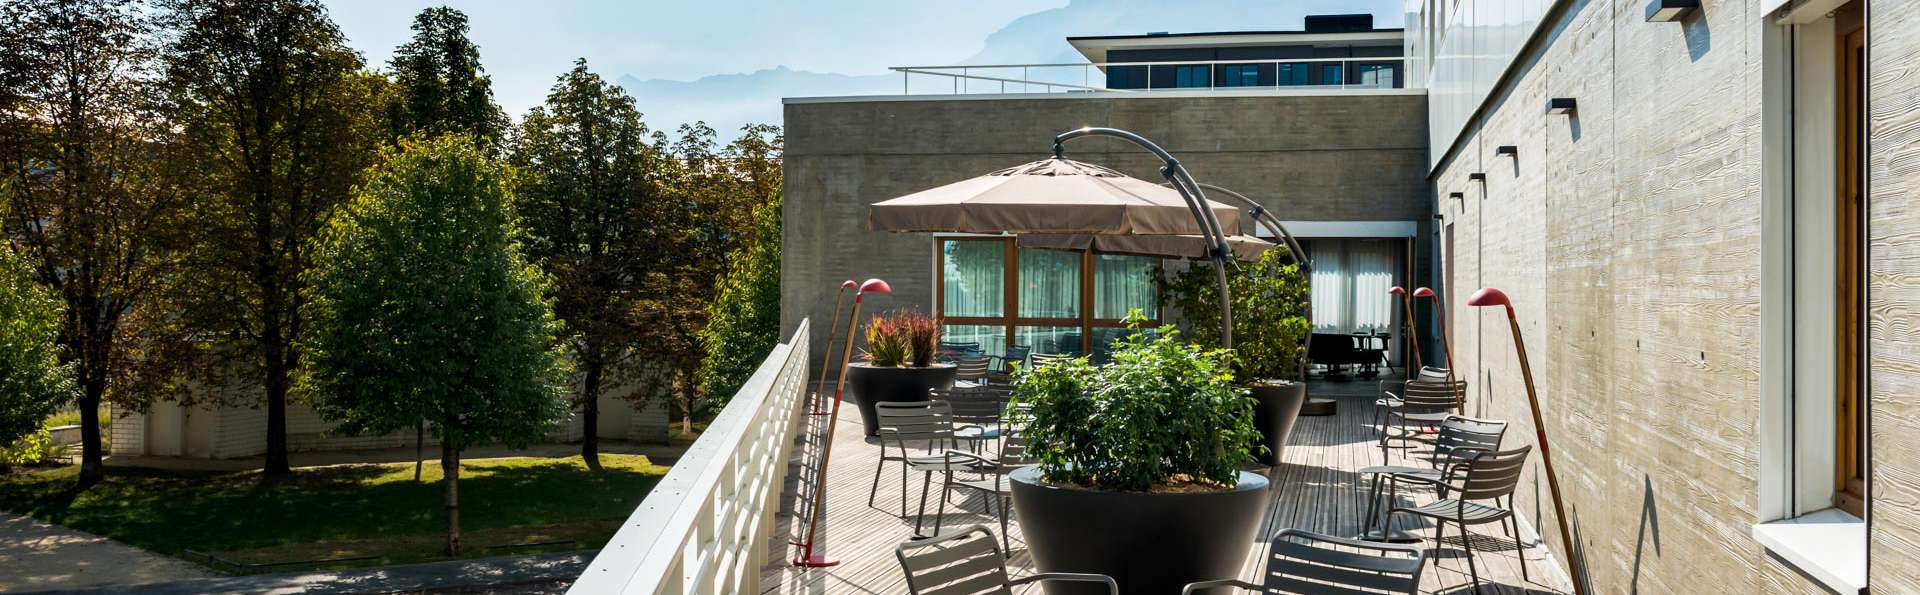 OKKO Hotels Grenoble - EDIT_TERRACE_03.jpg